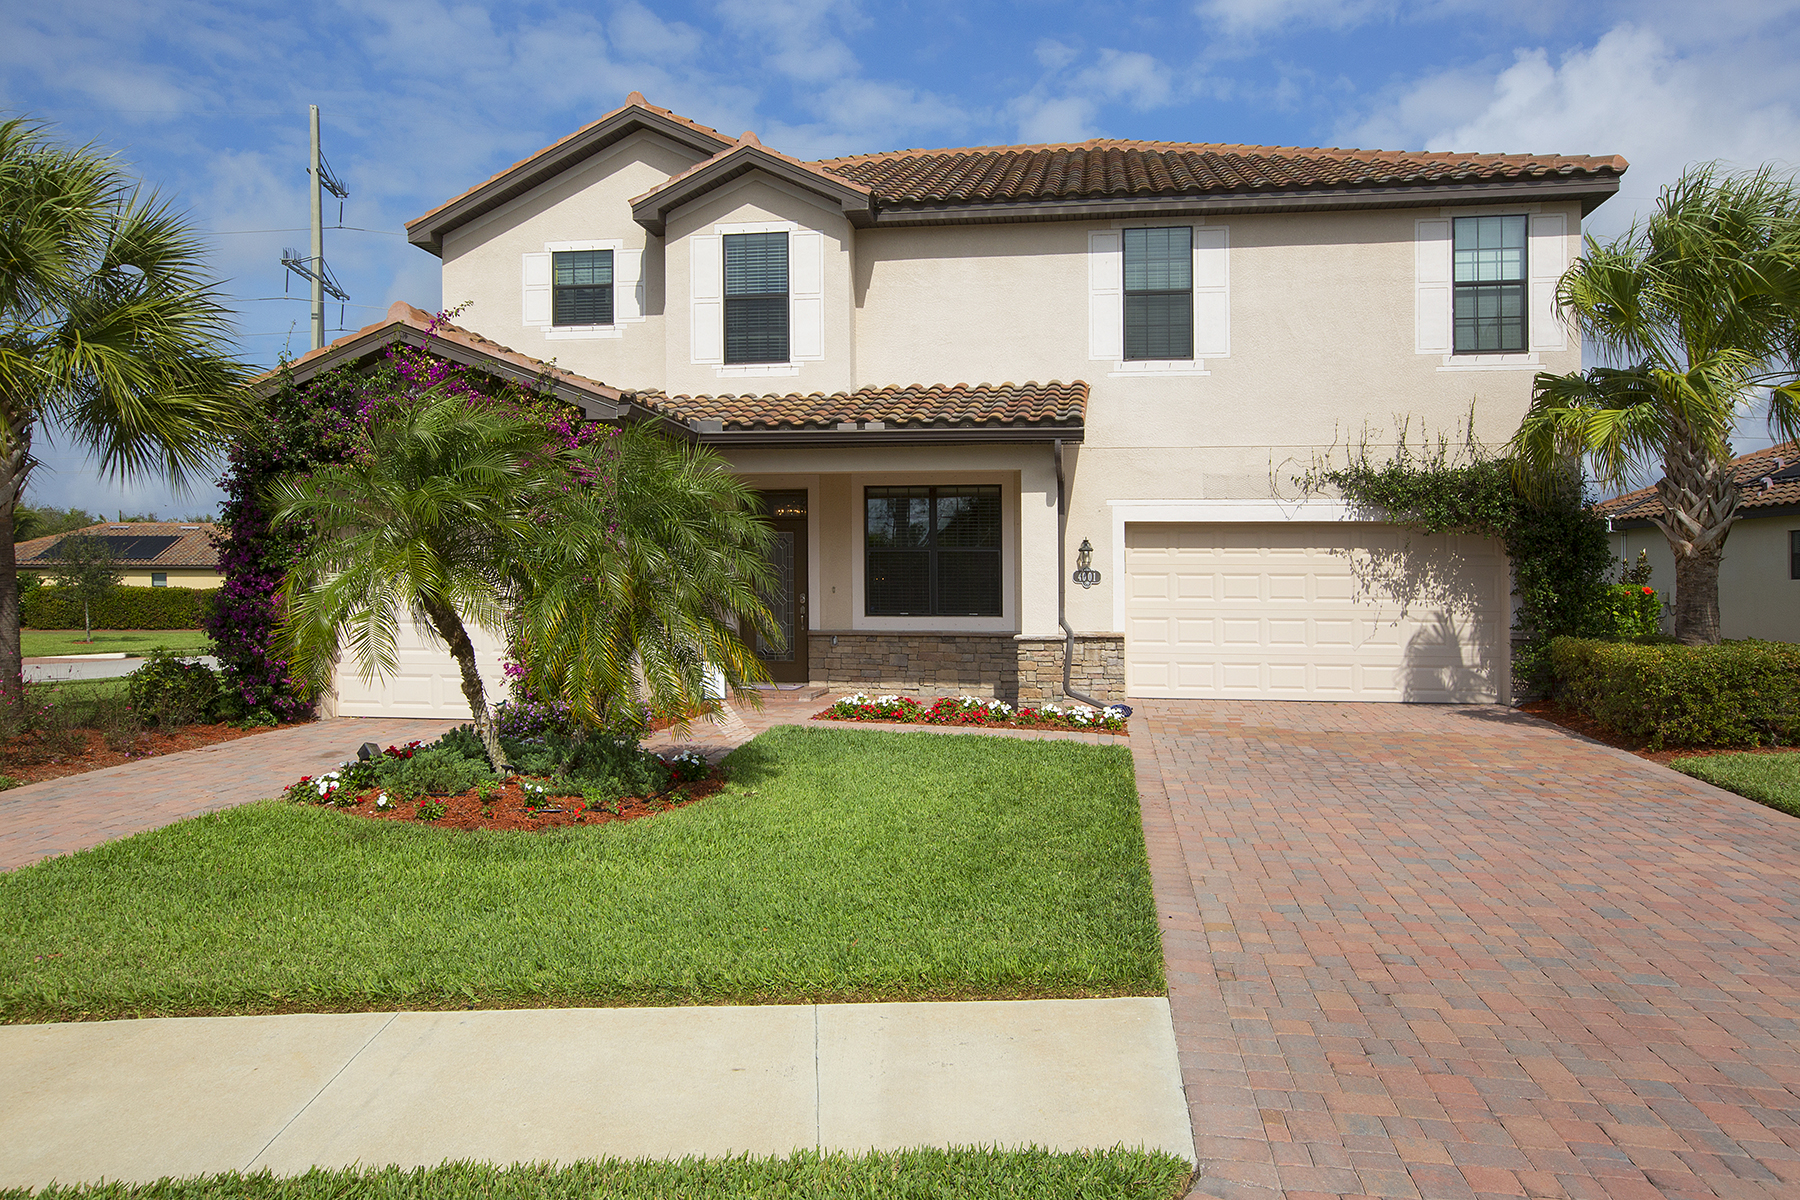 Casa Unifamiliar por un Venta en COPPER COVE 4001 Treasure Cove Cir Naples, Florida, 34114 Estados Unidos